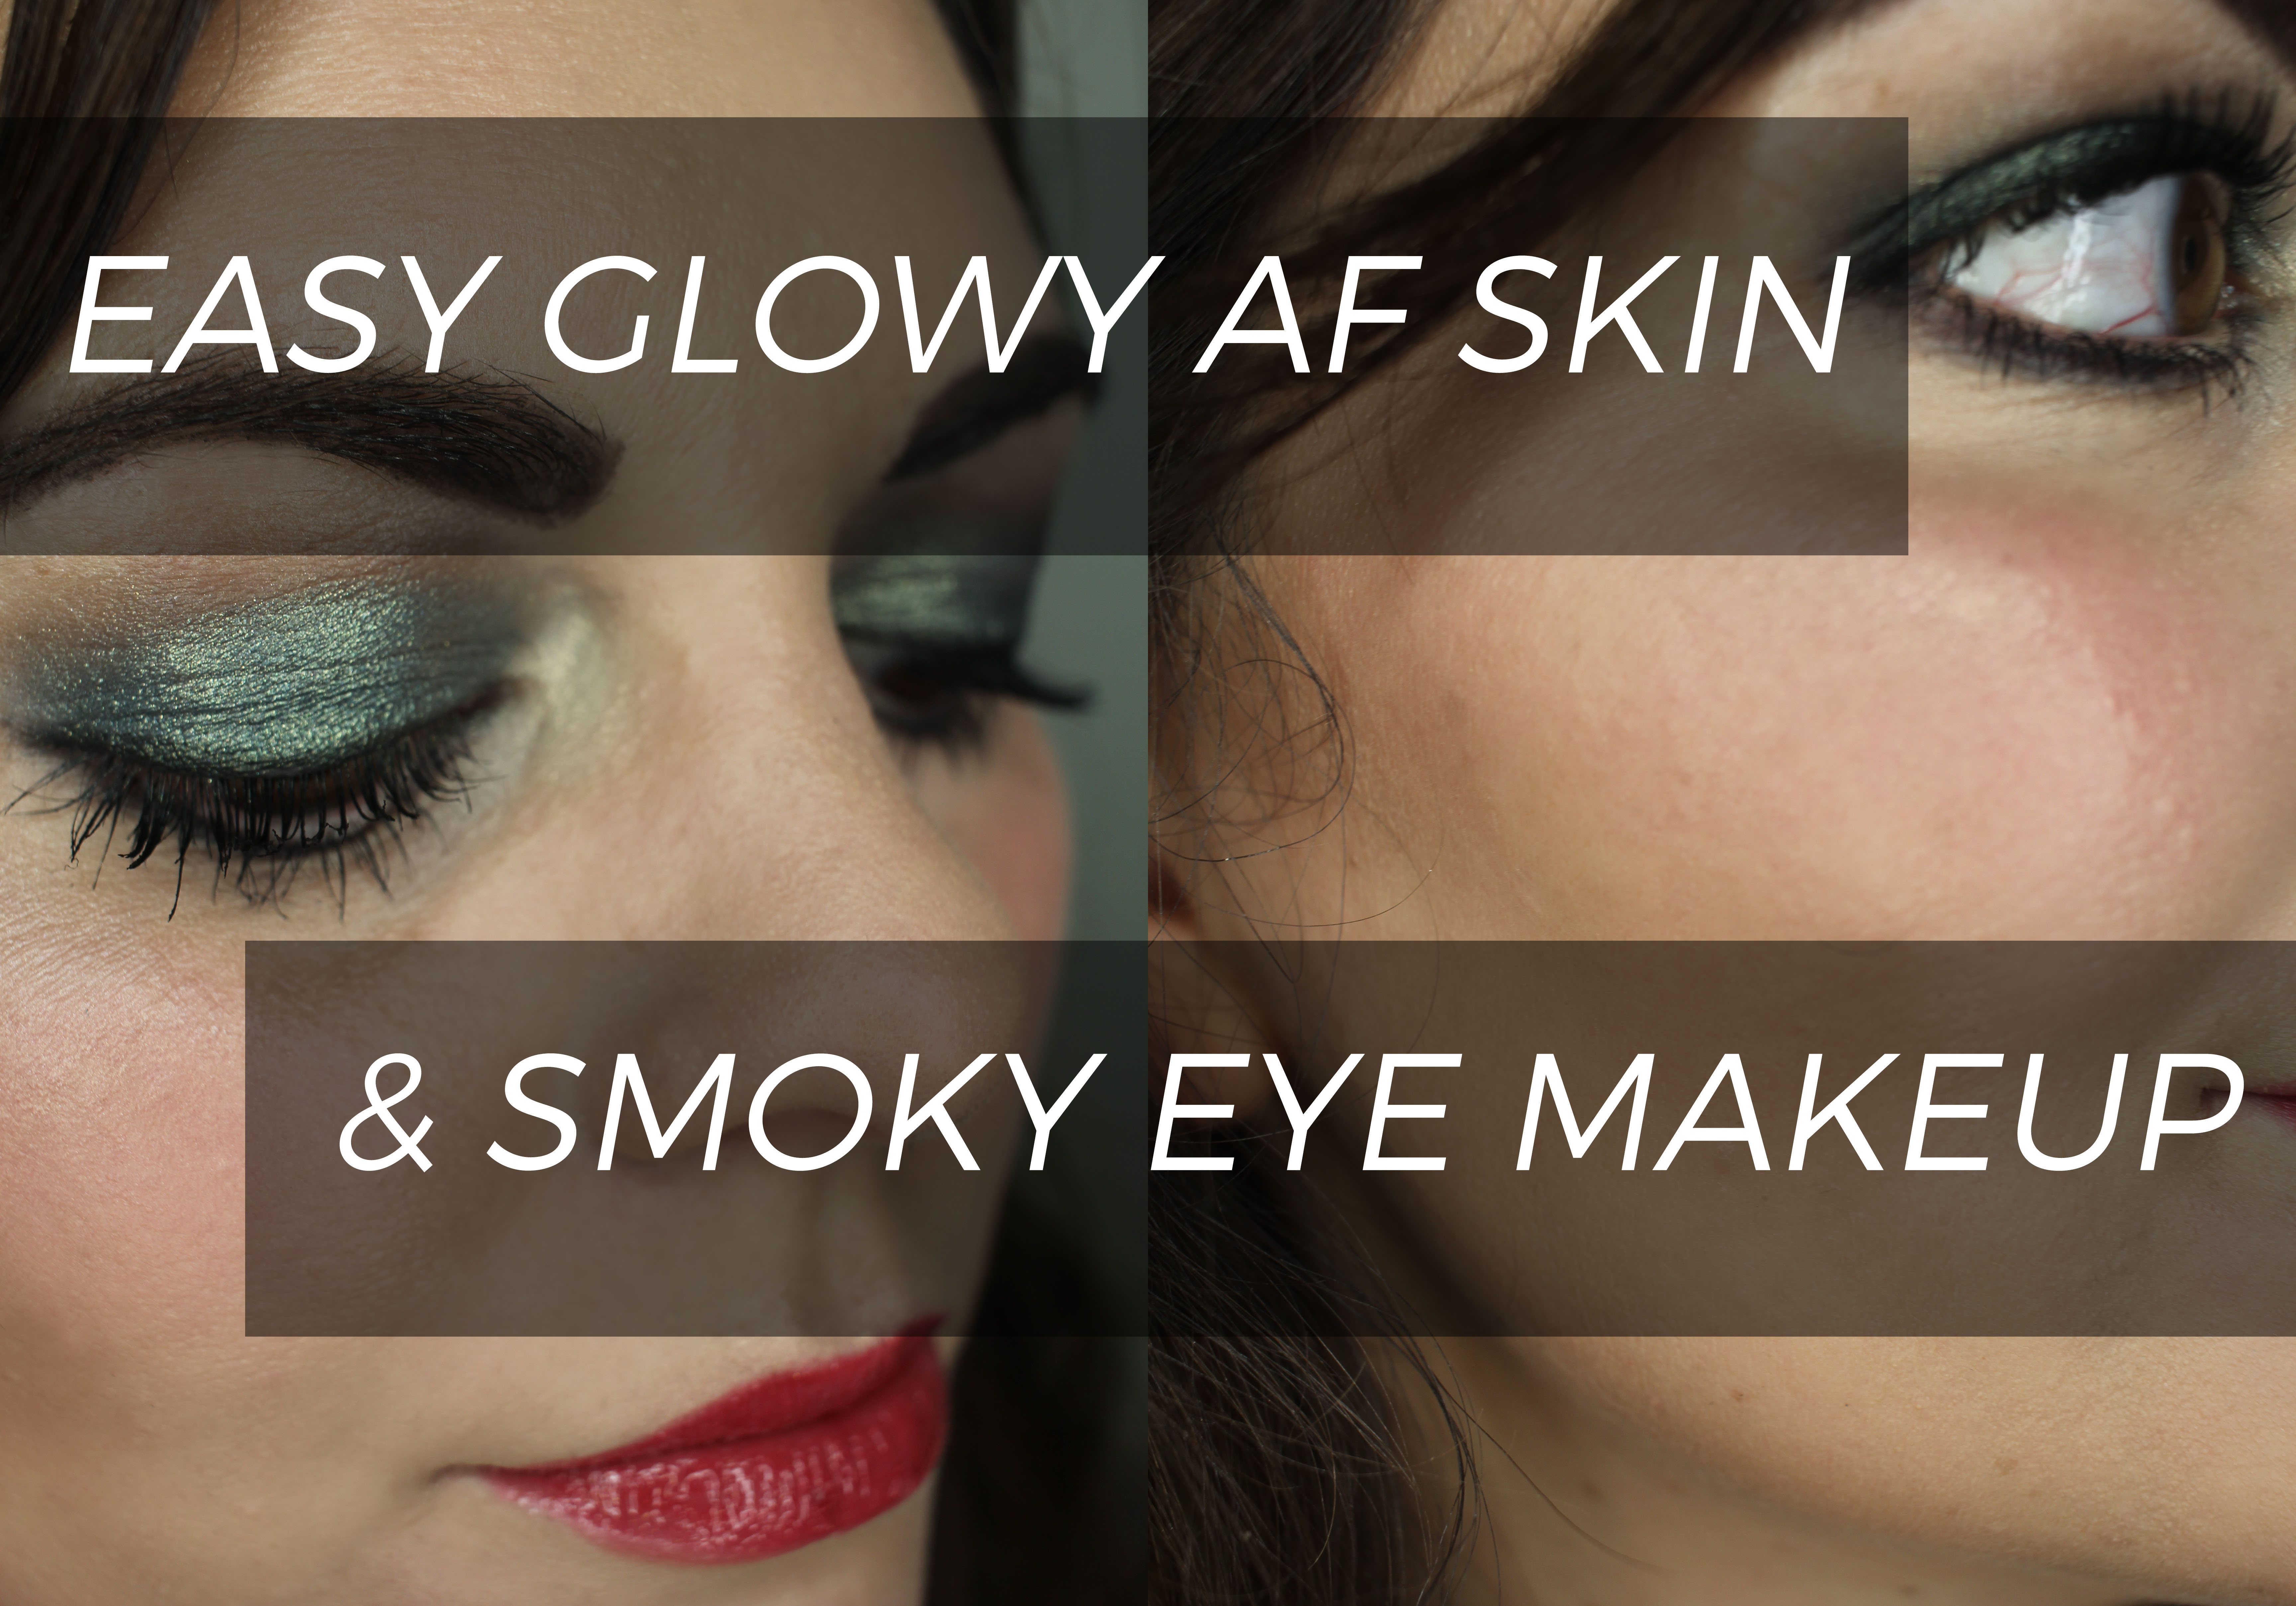 Easy Glow AF Skin & Smoky Eye Makeup